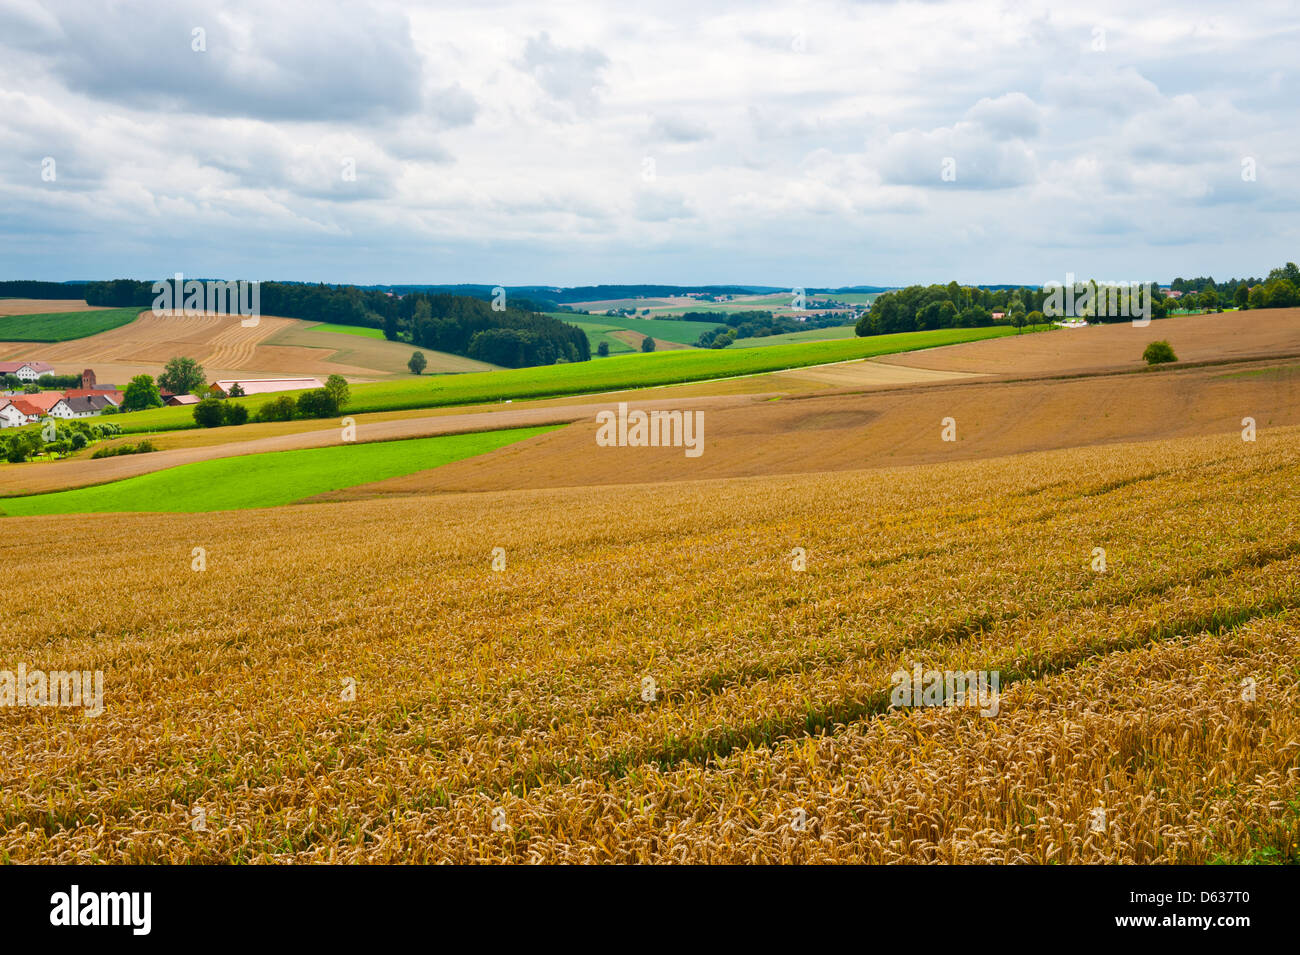 Village - Stock Image